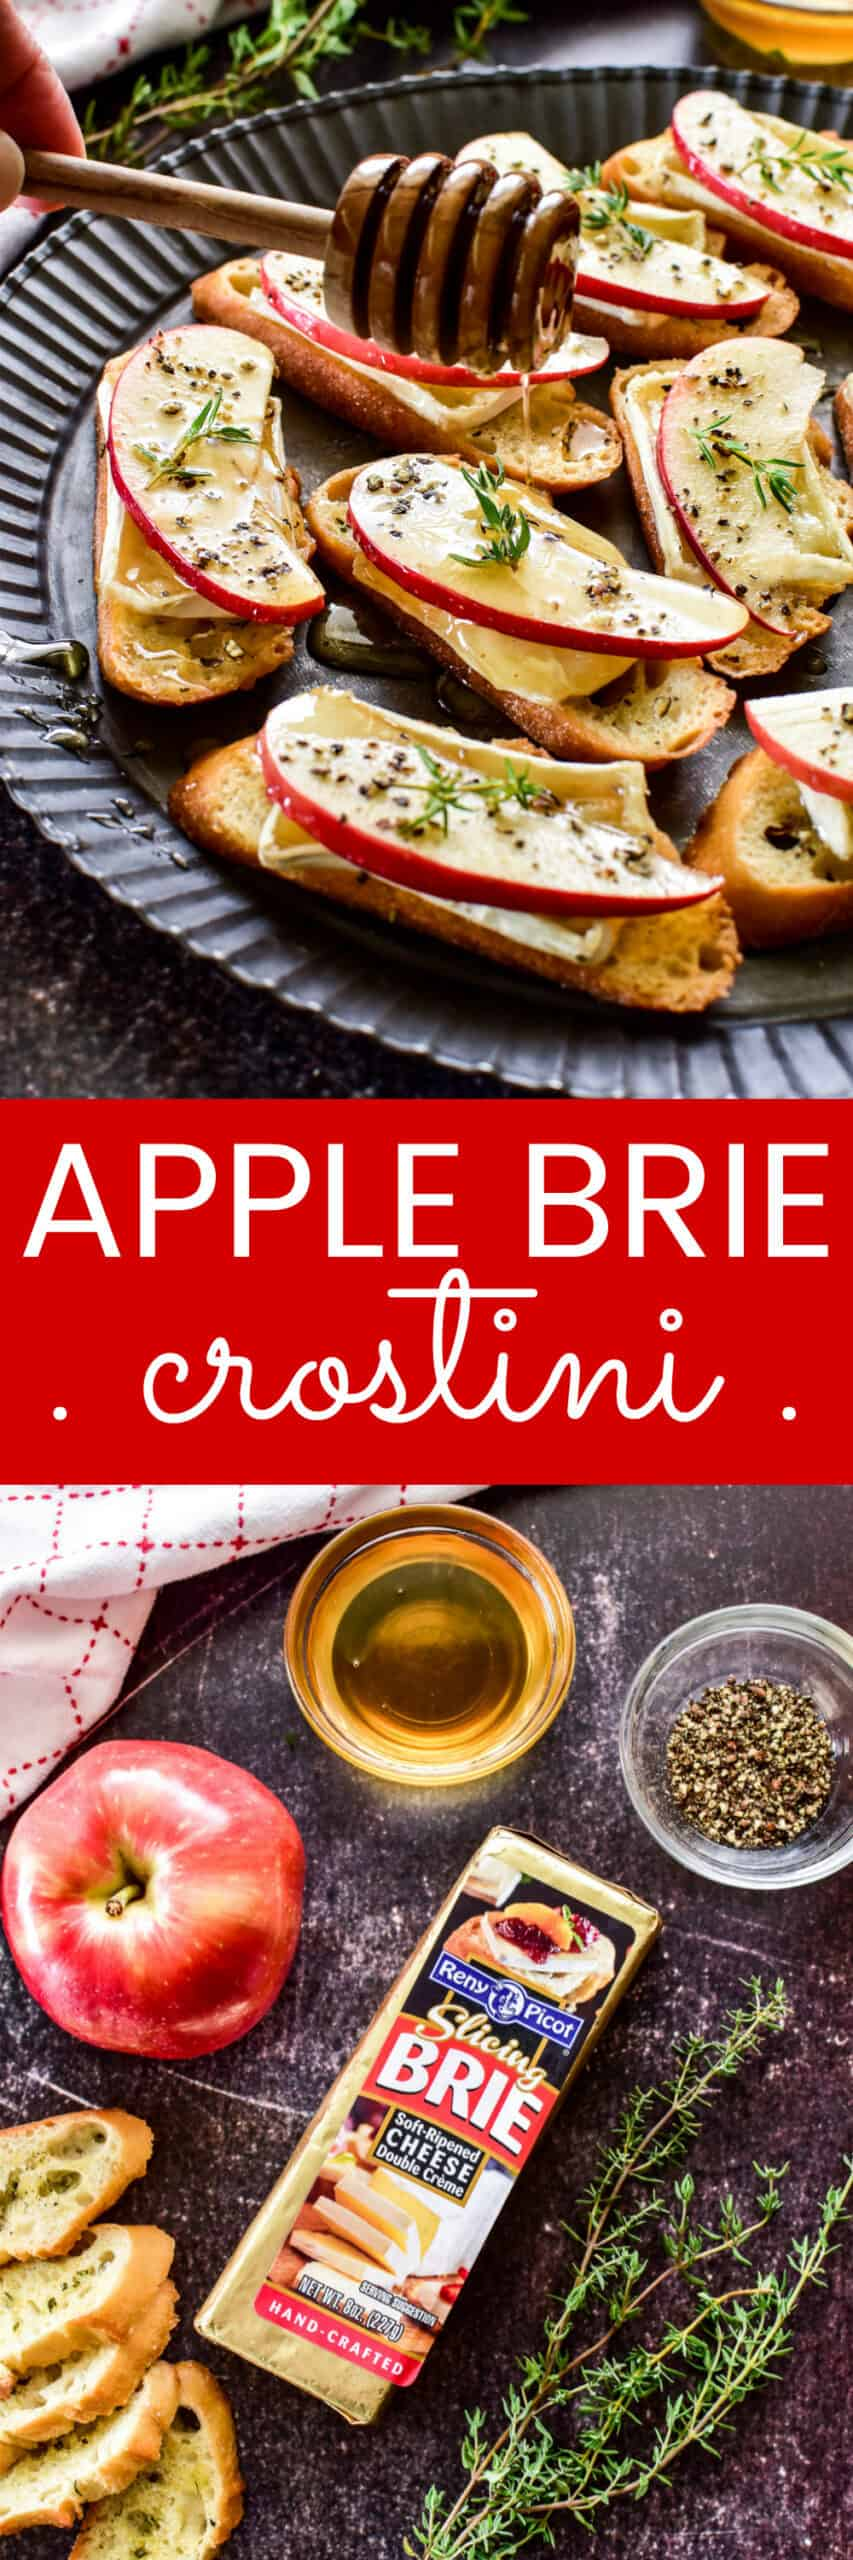 Apple Brie Crostini collage image